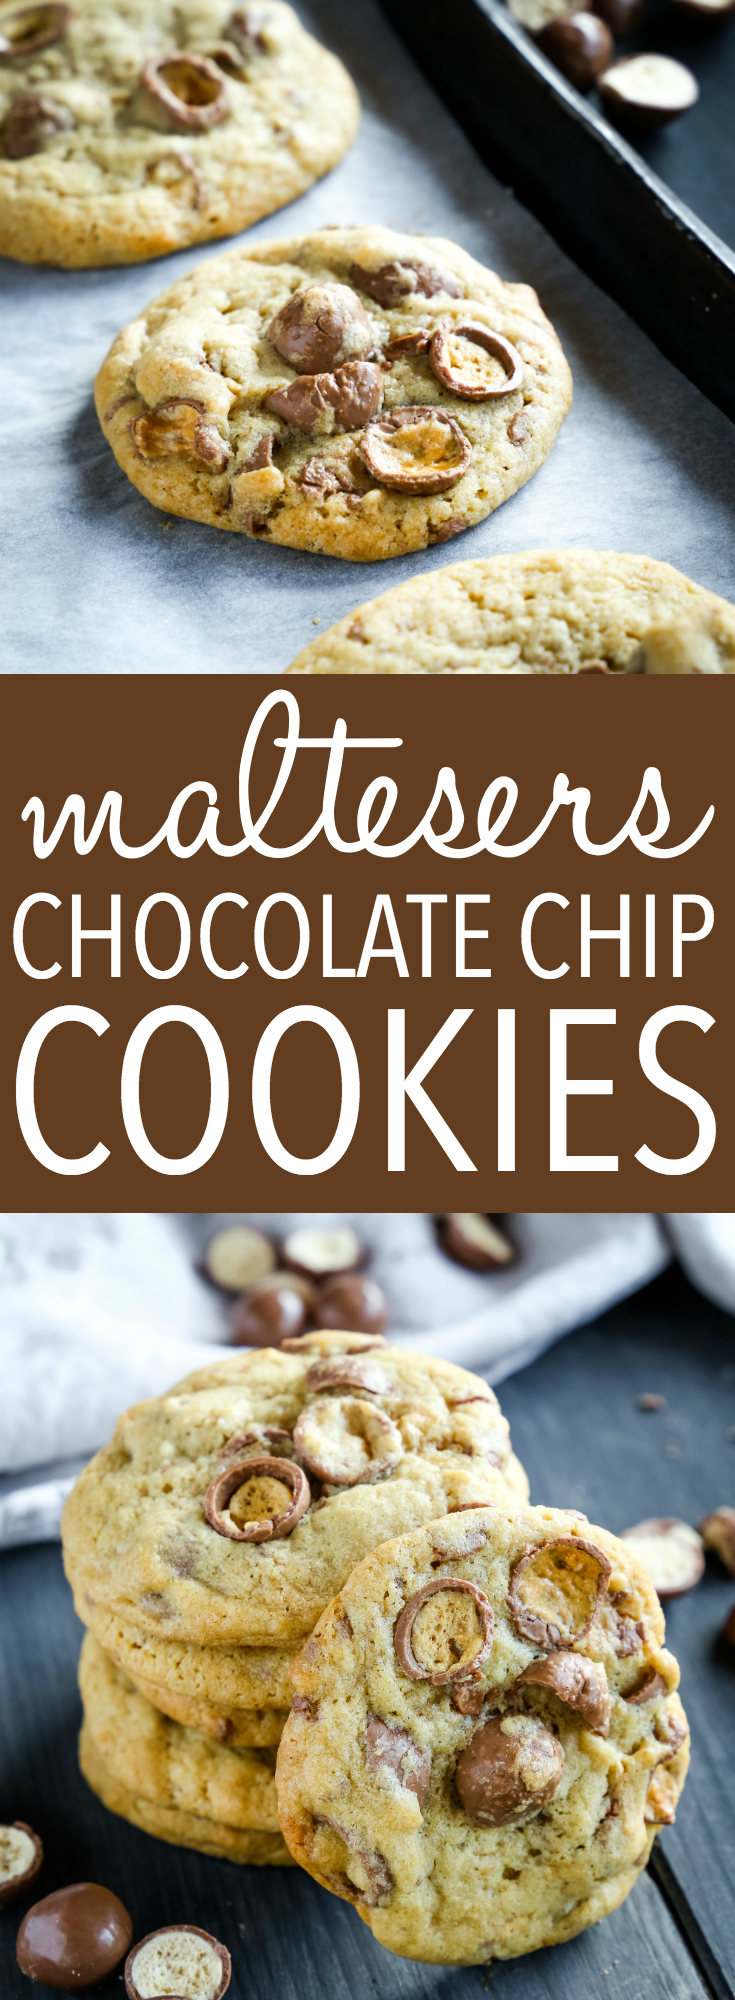 These Maltesers Chocolate Chip Cookies are the perfect homemade treat for Maltesers lovers! A tender, chewy cookie made with everybody's favourite malted milk chocolate balls! Recipe from thebusybaker.ca! #maltesers #maltballs #maltedmilk #malt #malt #candy #chocolate #chocolatebar #candybar #chocolatechips #chocolatechipcookies #cookies #dessert #snack #easyrecipe #homemade via @busybakerblog